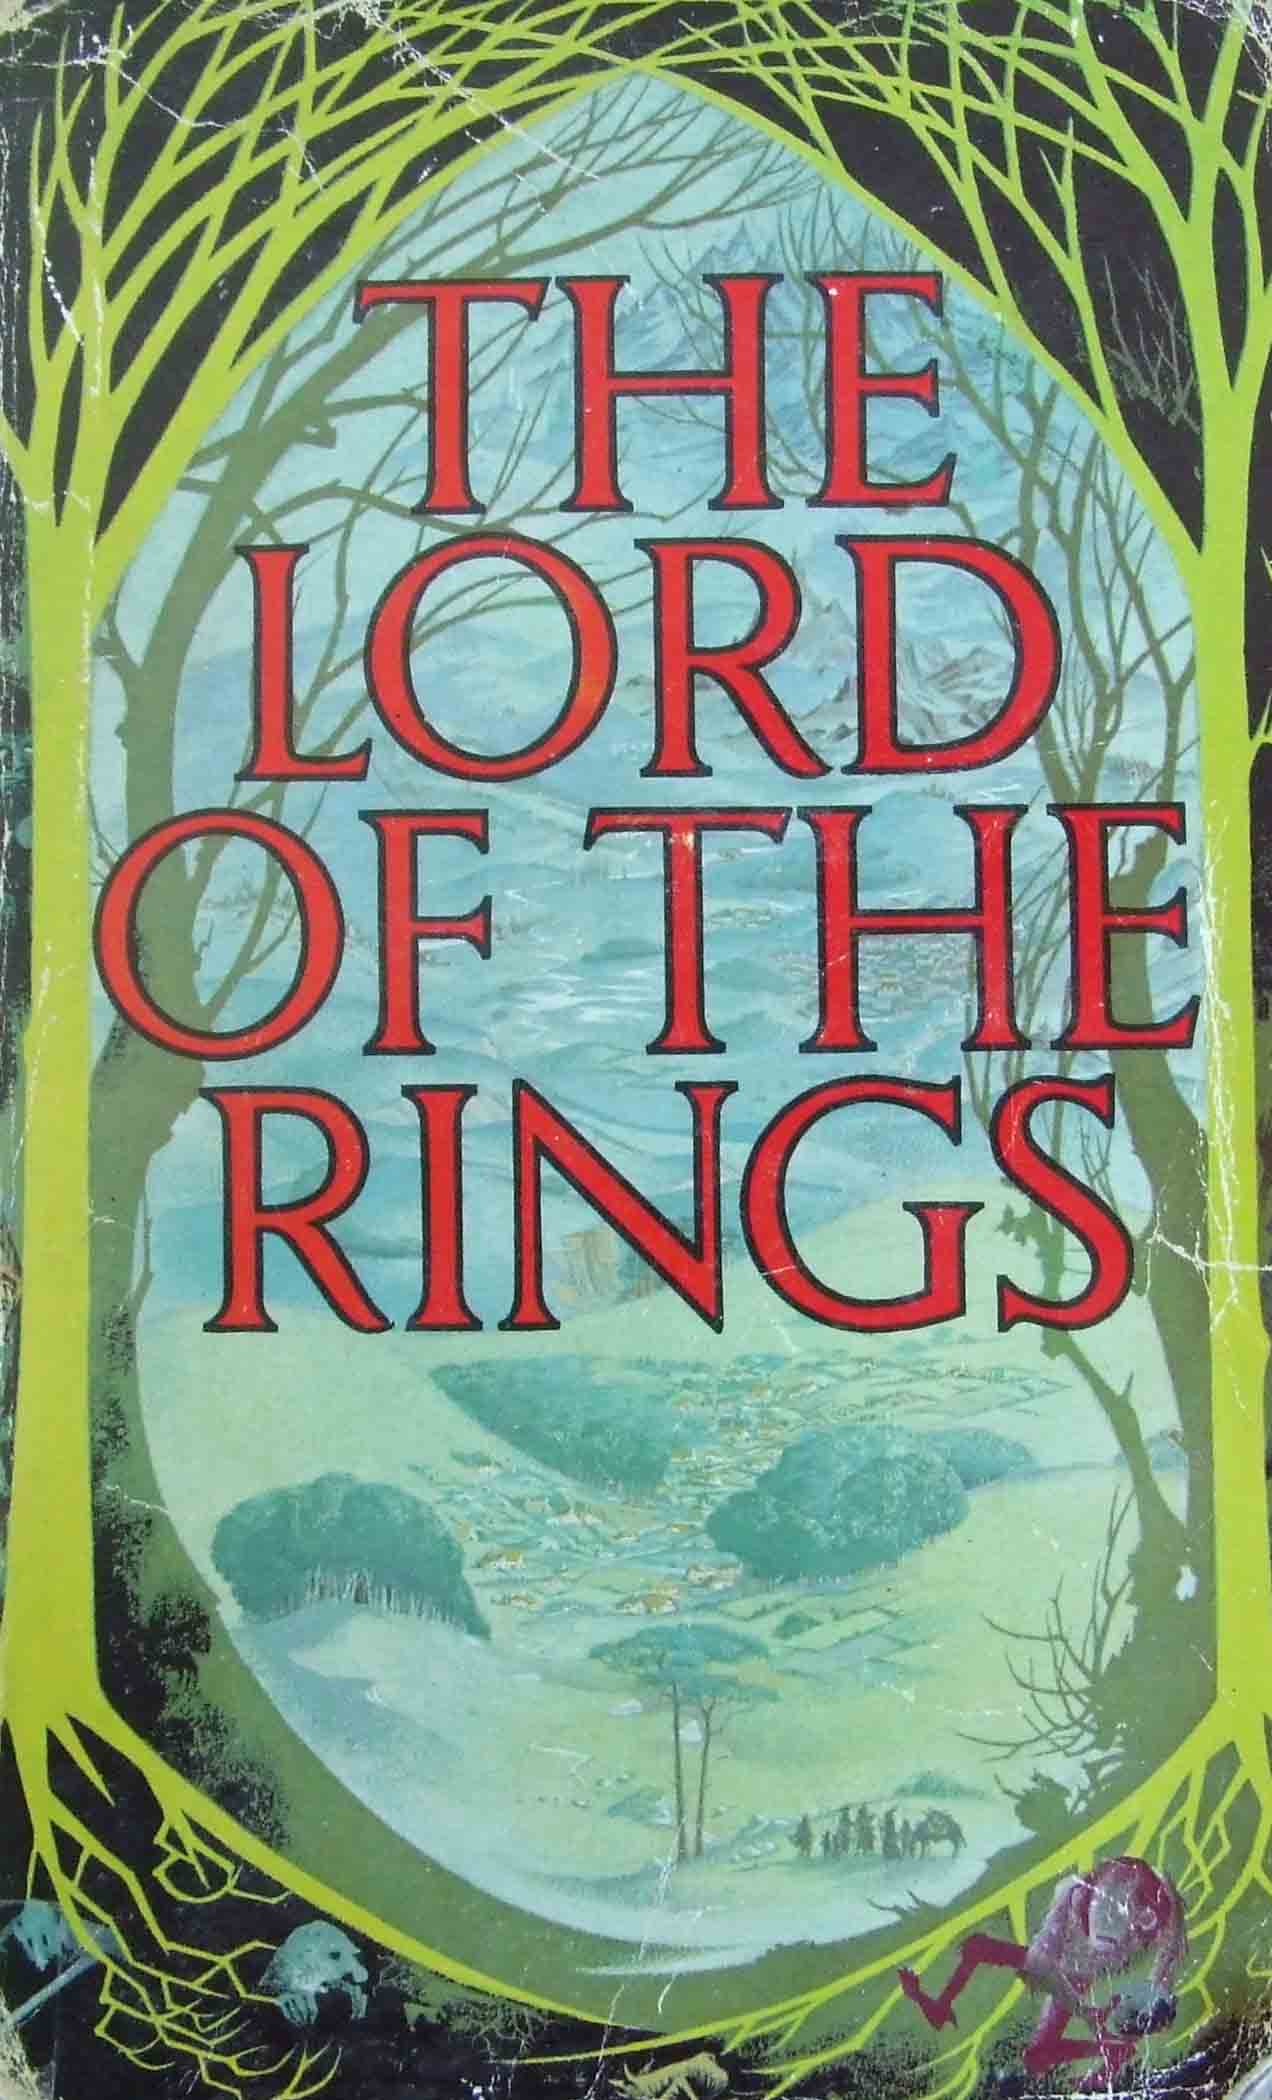 Book one lord of the rings Foto